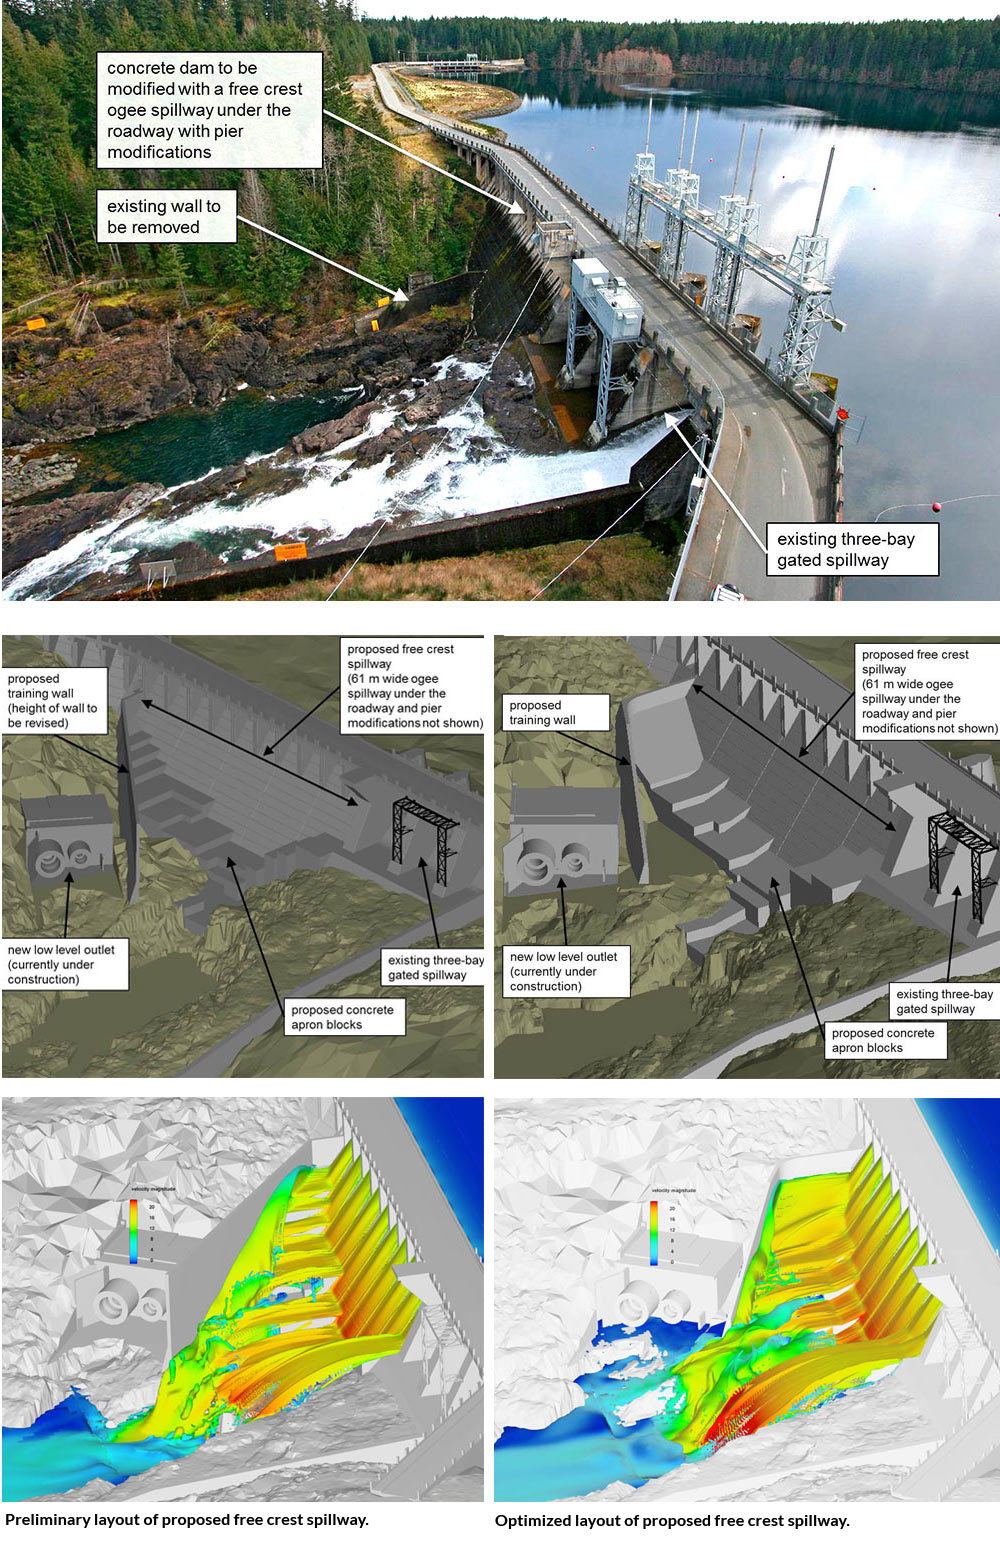 FLOW-3D model results for the preliminary and optimized layout of the proposed spillway at John Hart Dam.